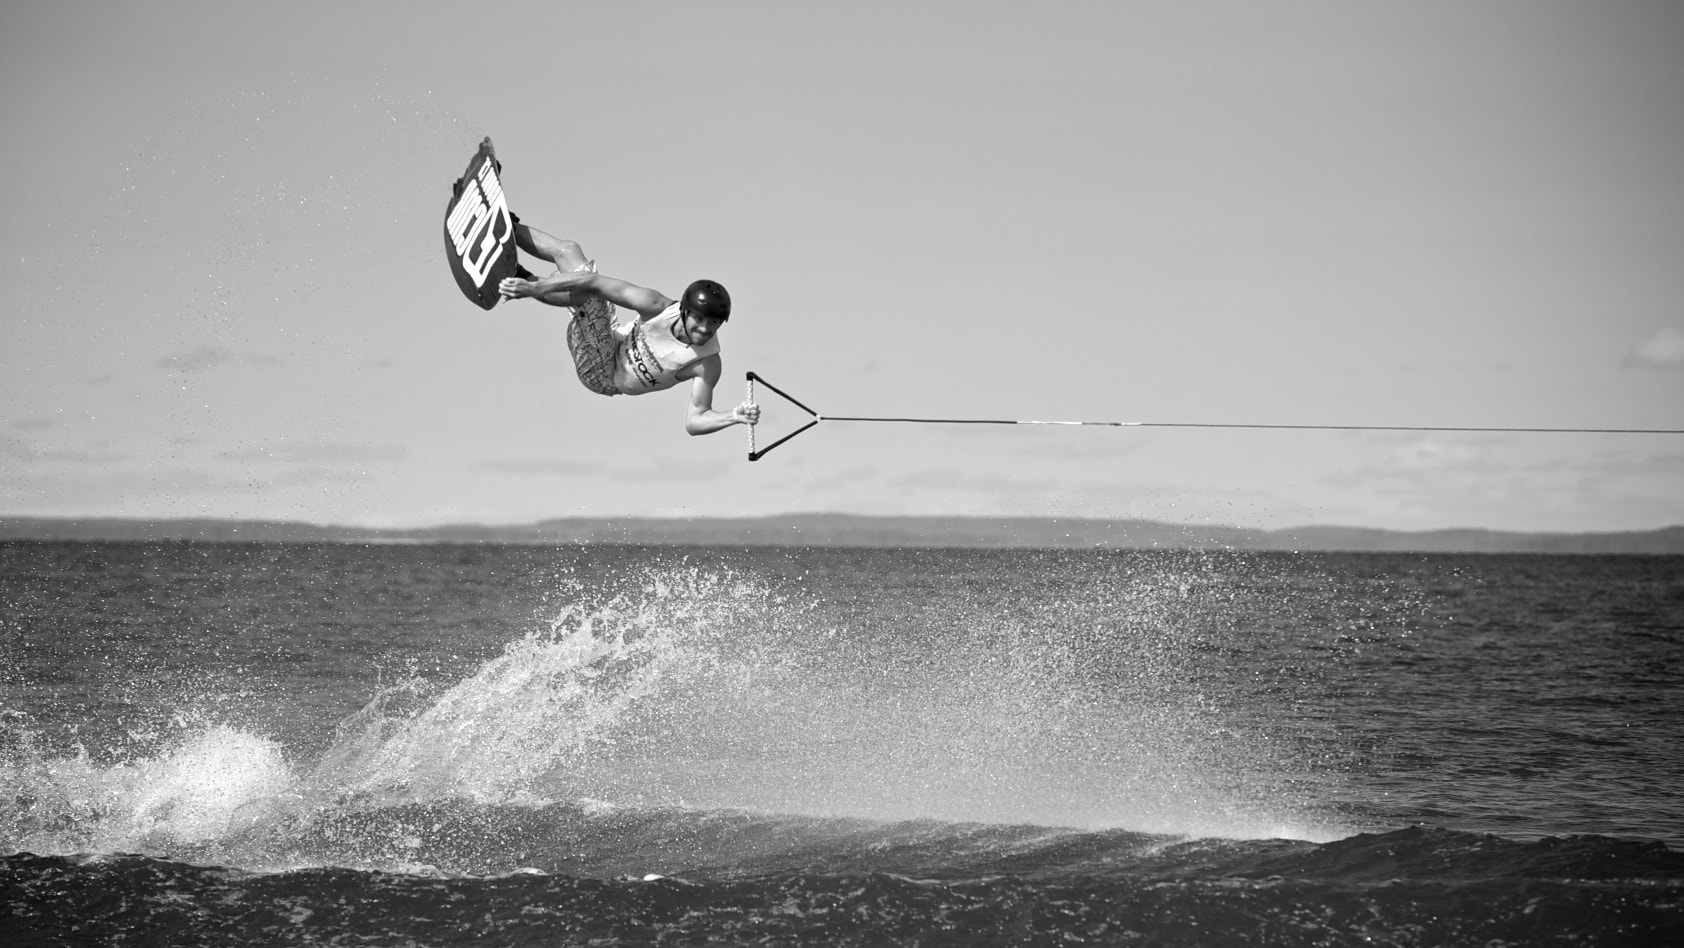 Photograph Wakestock*2136 by Mark Shannon on 500px